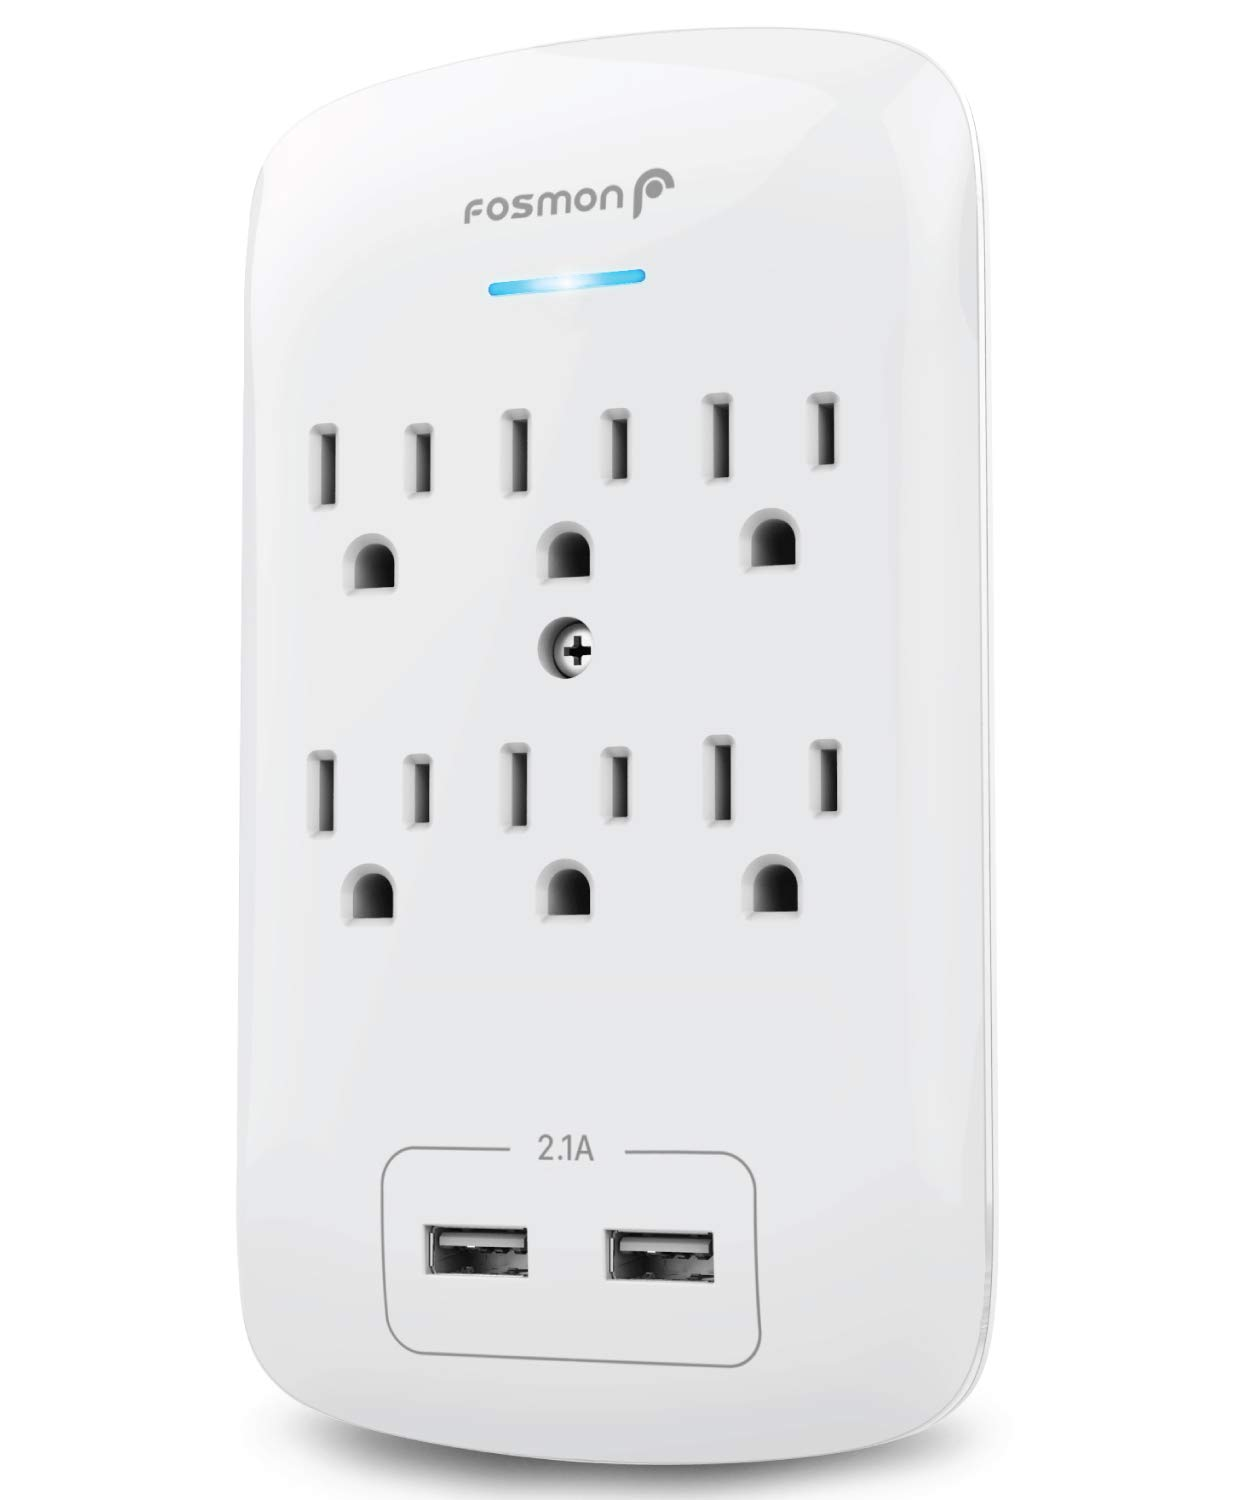 Fosmon C-10685 6 Outlet USB Surge Protector, 3-Prong Wall Mount Adapter Tap with 2 Dual USB Port Charger 2.1A Quick Charging, 1875 Watts Indoor, Grounded, ETL Listed, White